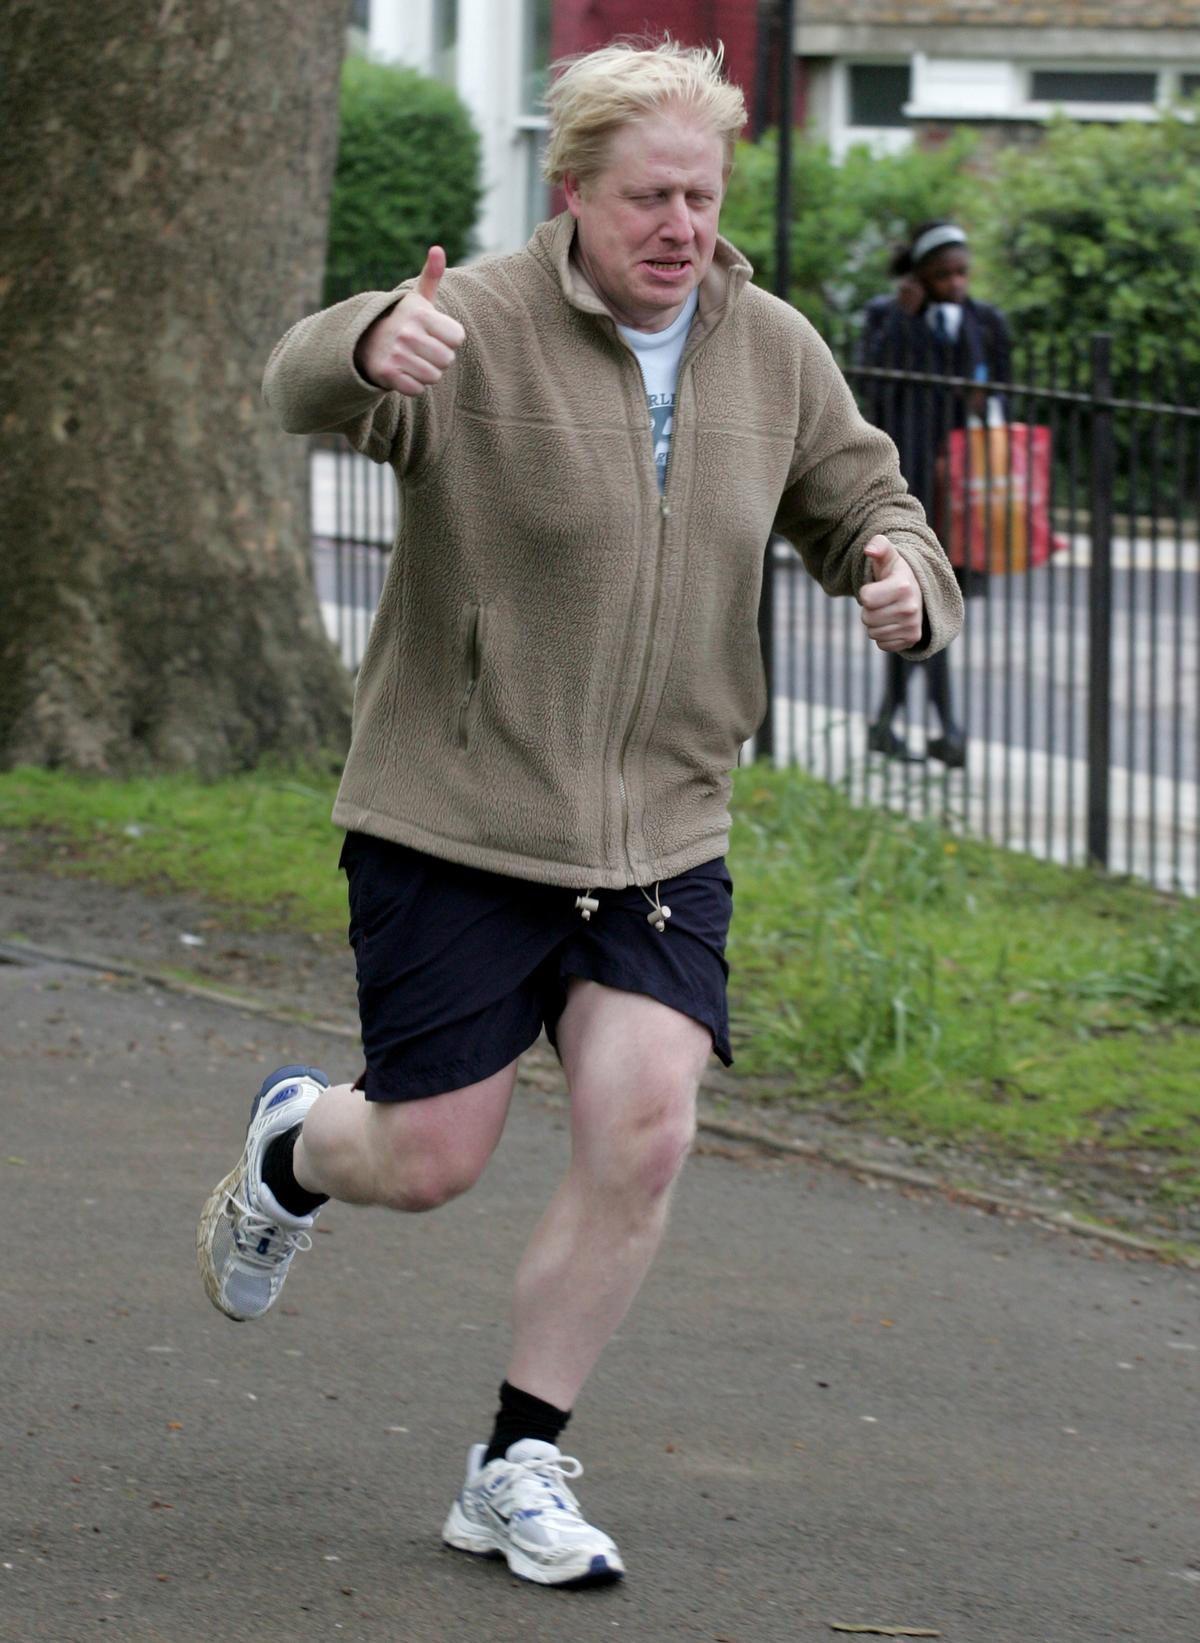 Johnson has been photographed running with Jameson near Westminster and is said to be 'taking the challenge seriously' / Shutterstock.com/Cubankite